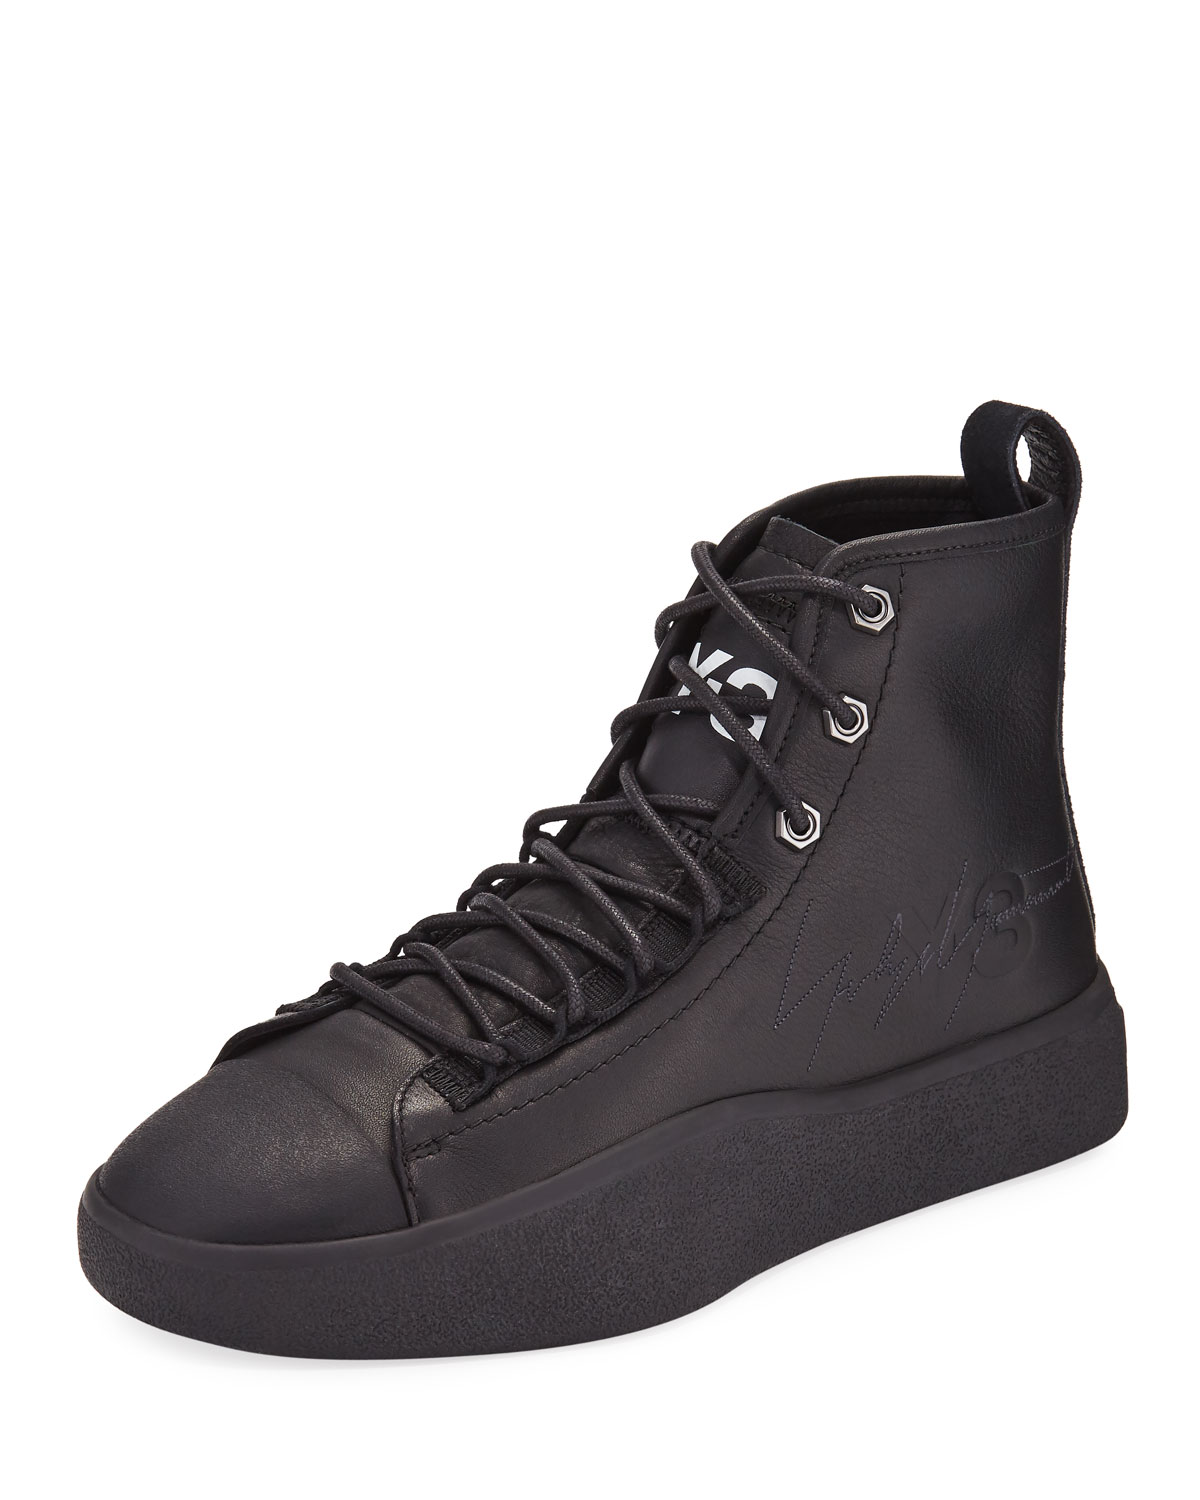 2a00339c04aa3 Y-3 Men s Bashyo Leather High-Top Sneakers